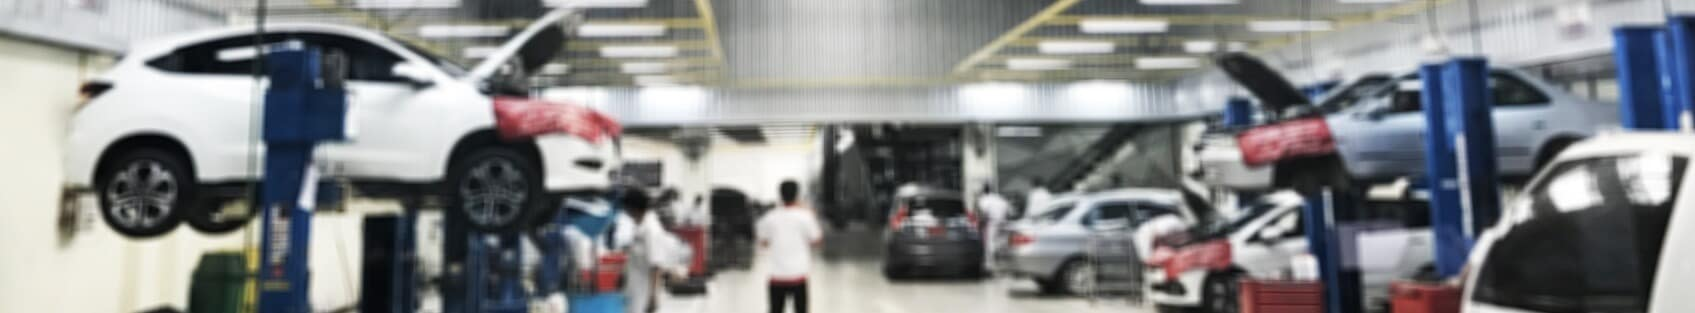 Why Do I Need to Get an Oil Change?